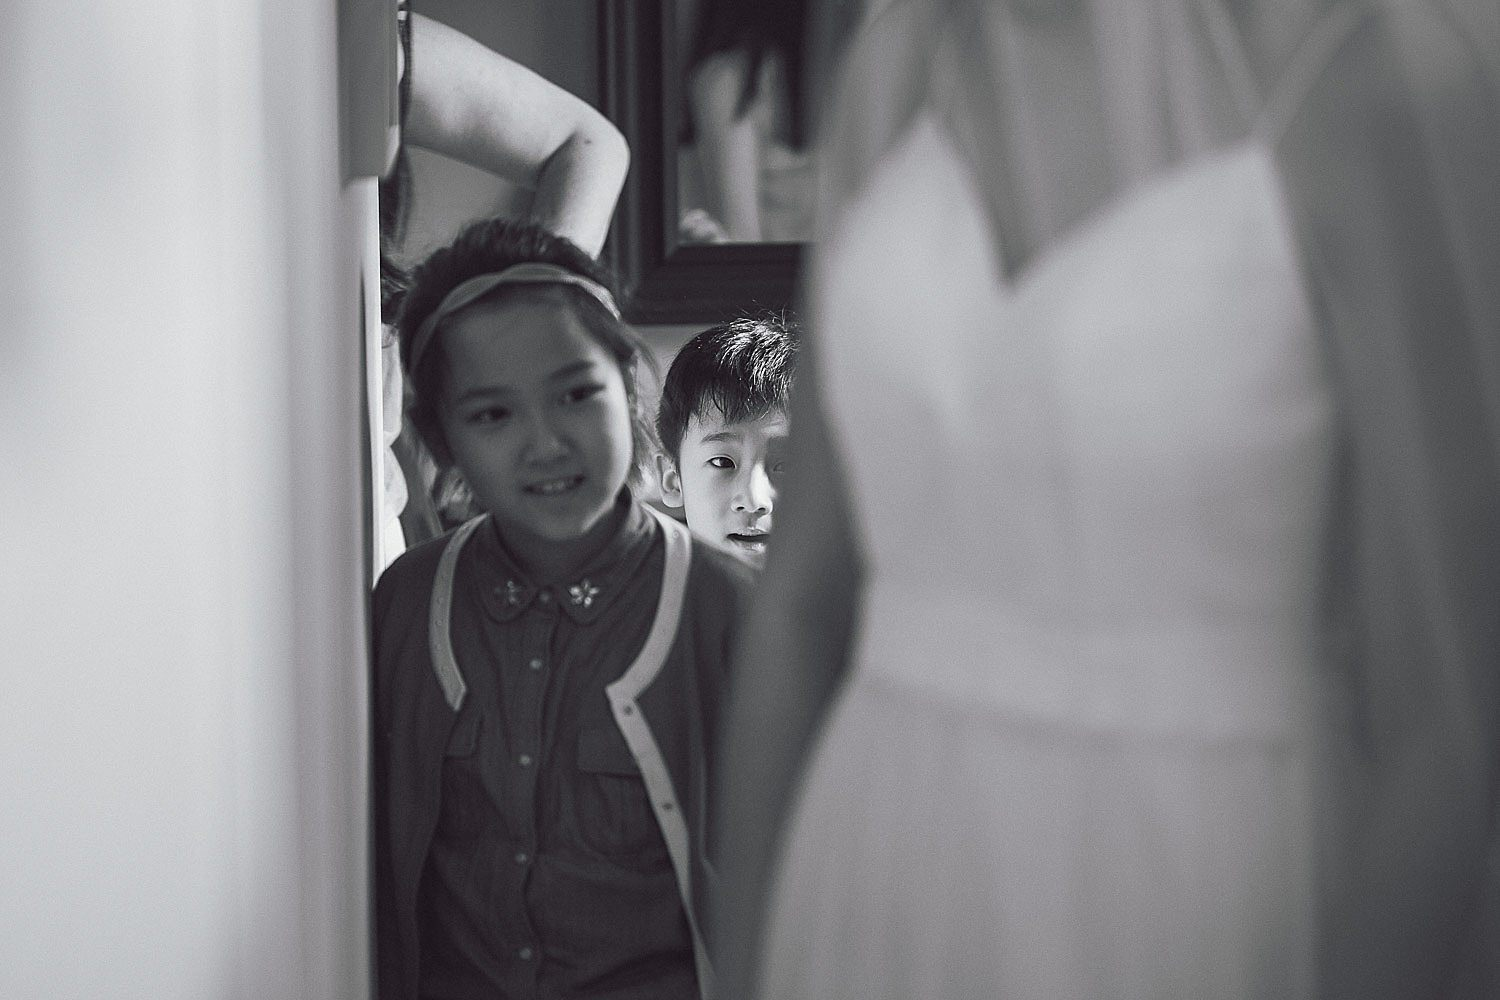 Nephew sneaks a peak at the bride